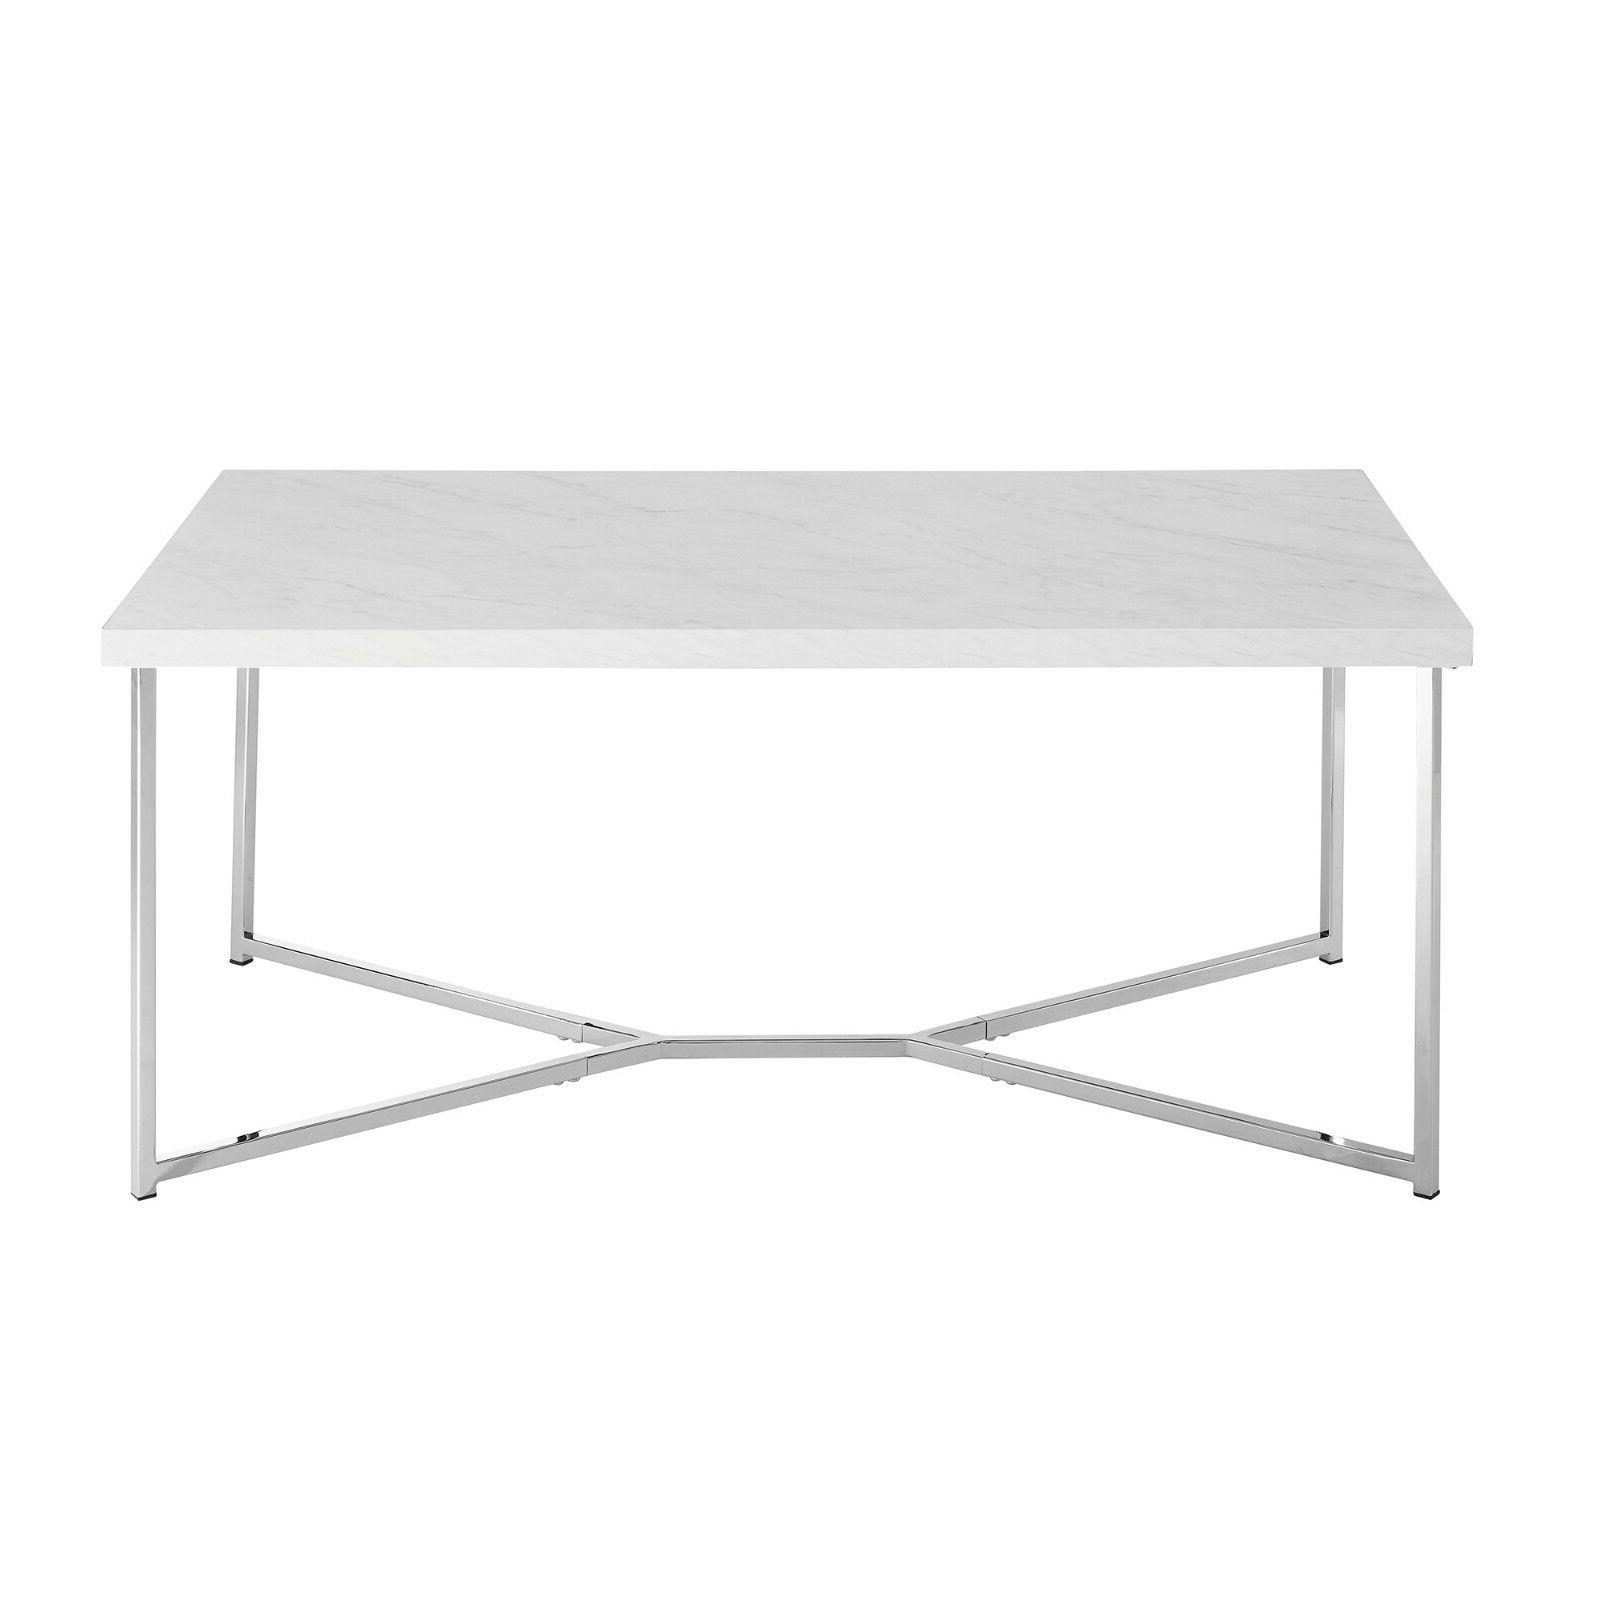 New Faux Marble Coffee Table Chrome